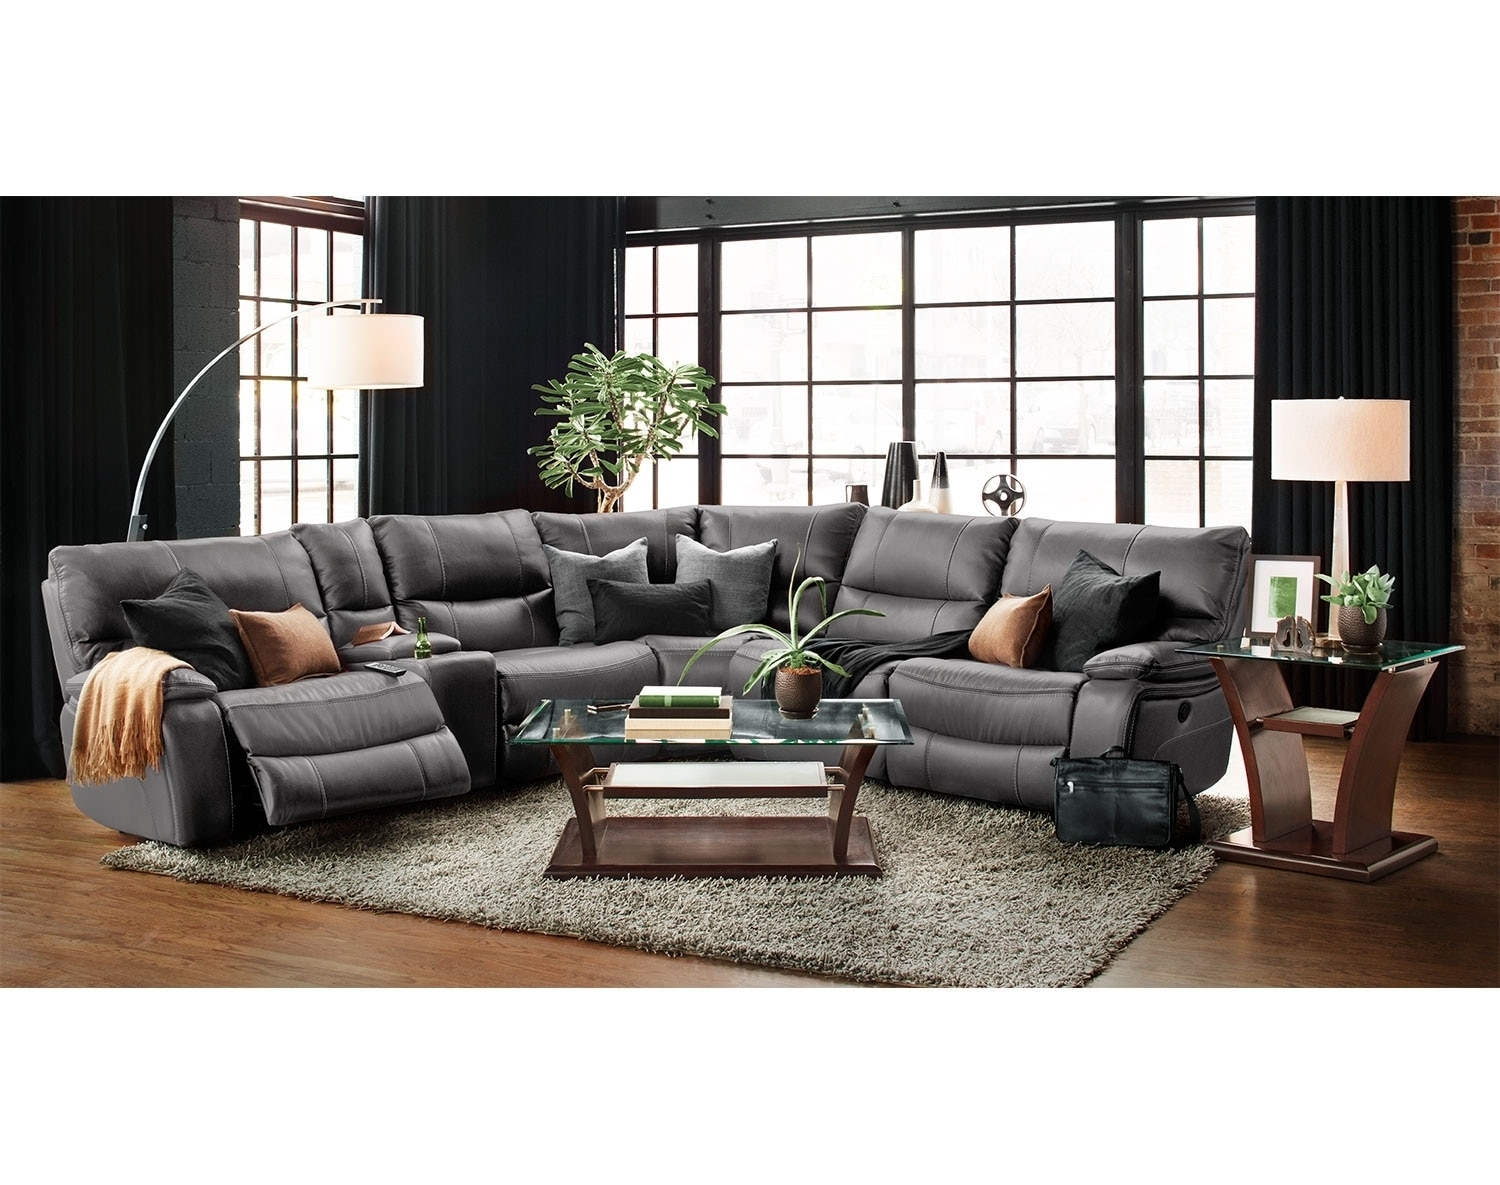 Inspirational Types Of Sectional Sofas 15 In Sectional Sofas In Rochester Ny Sectional Sofas (View 6 of 10)